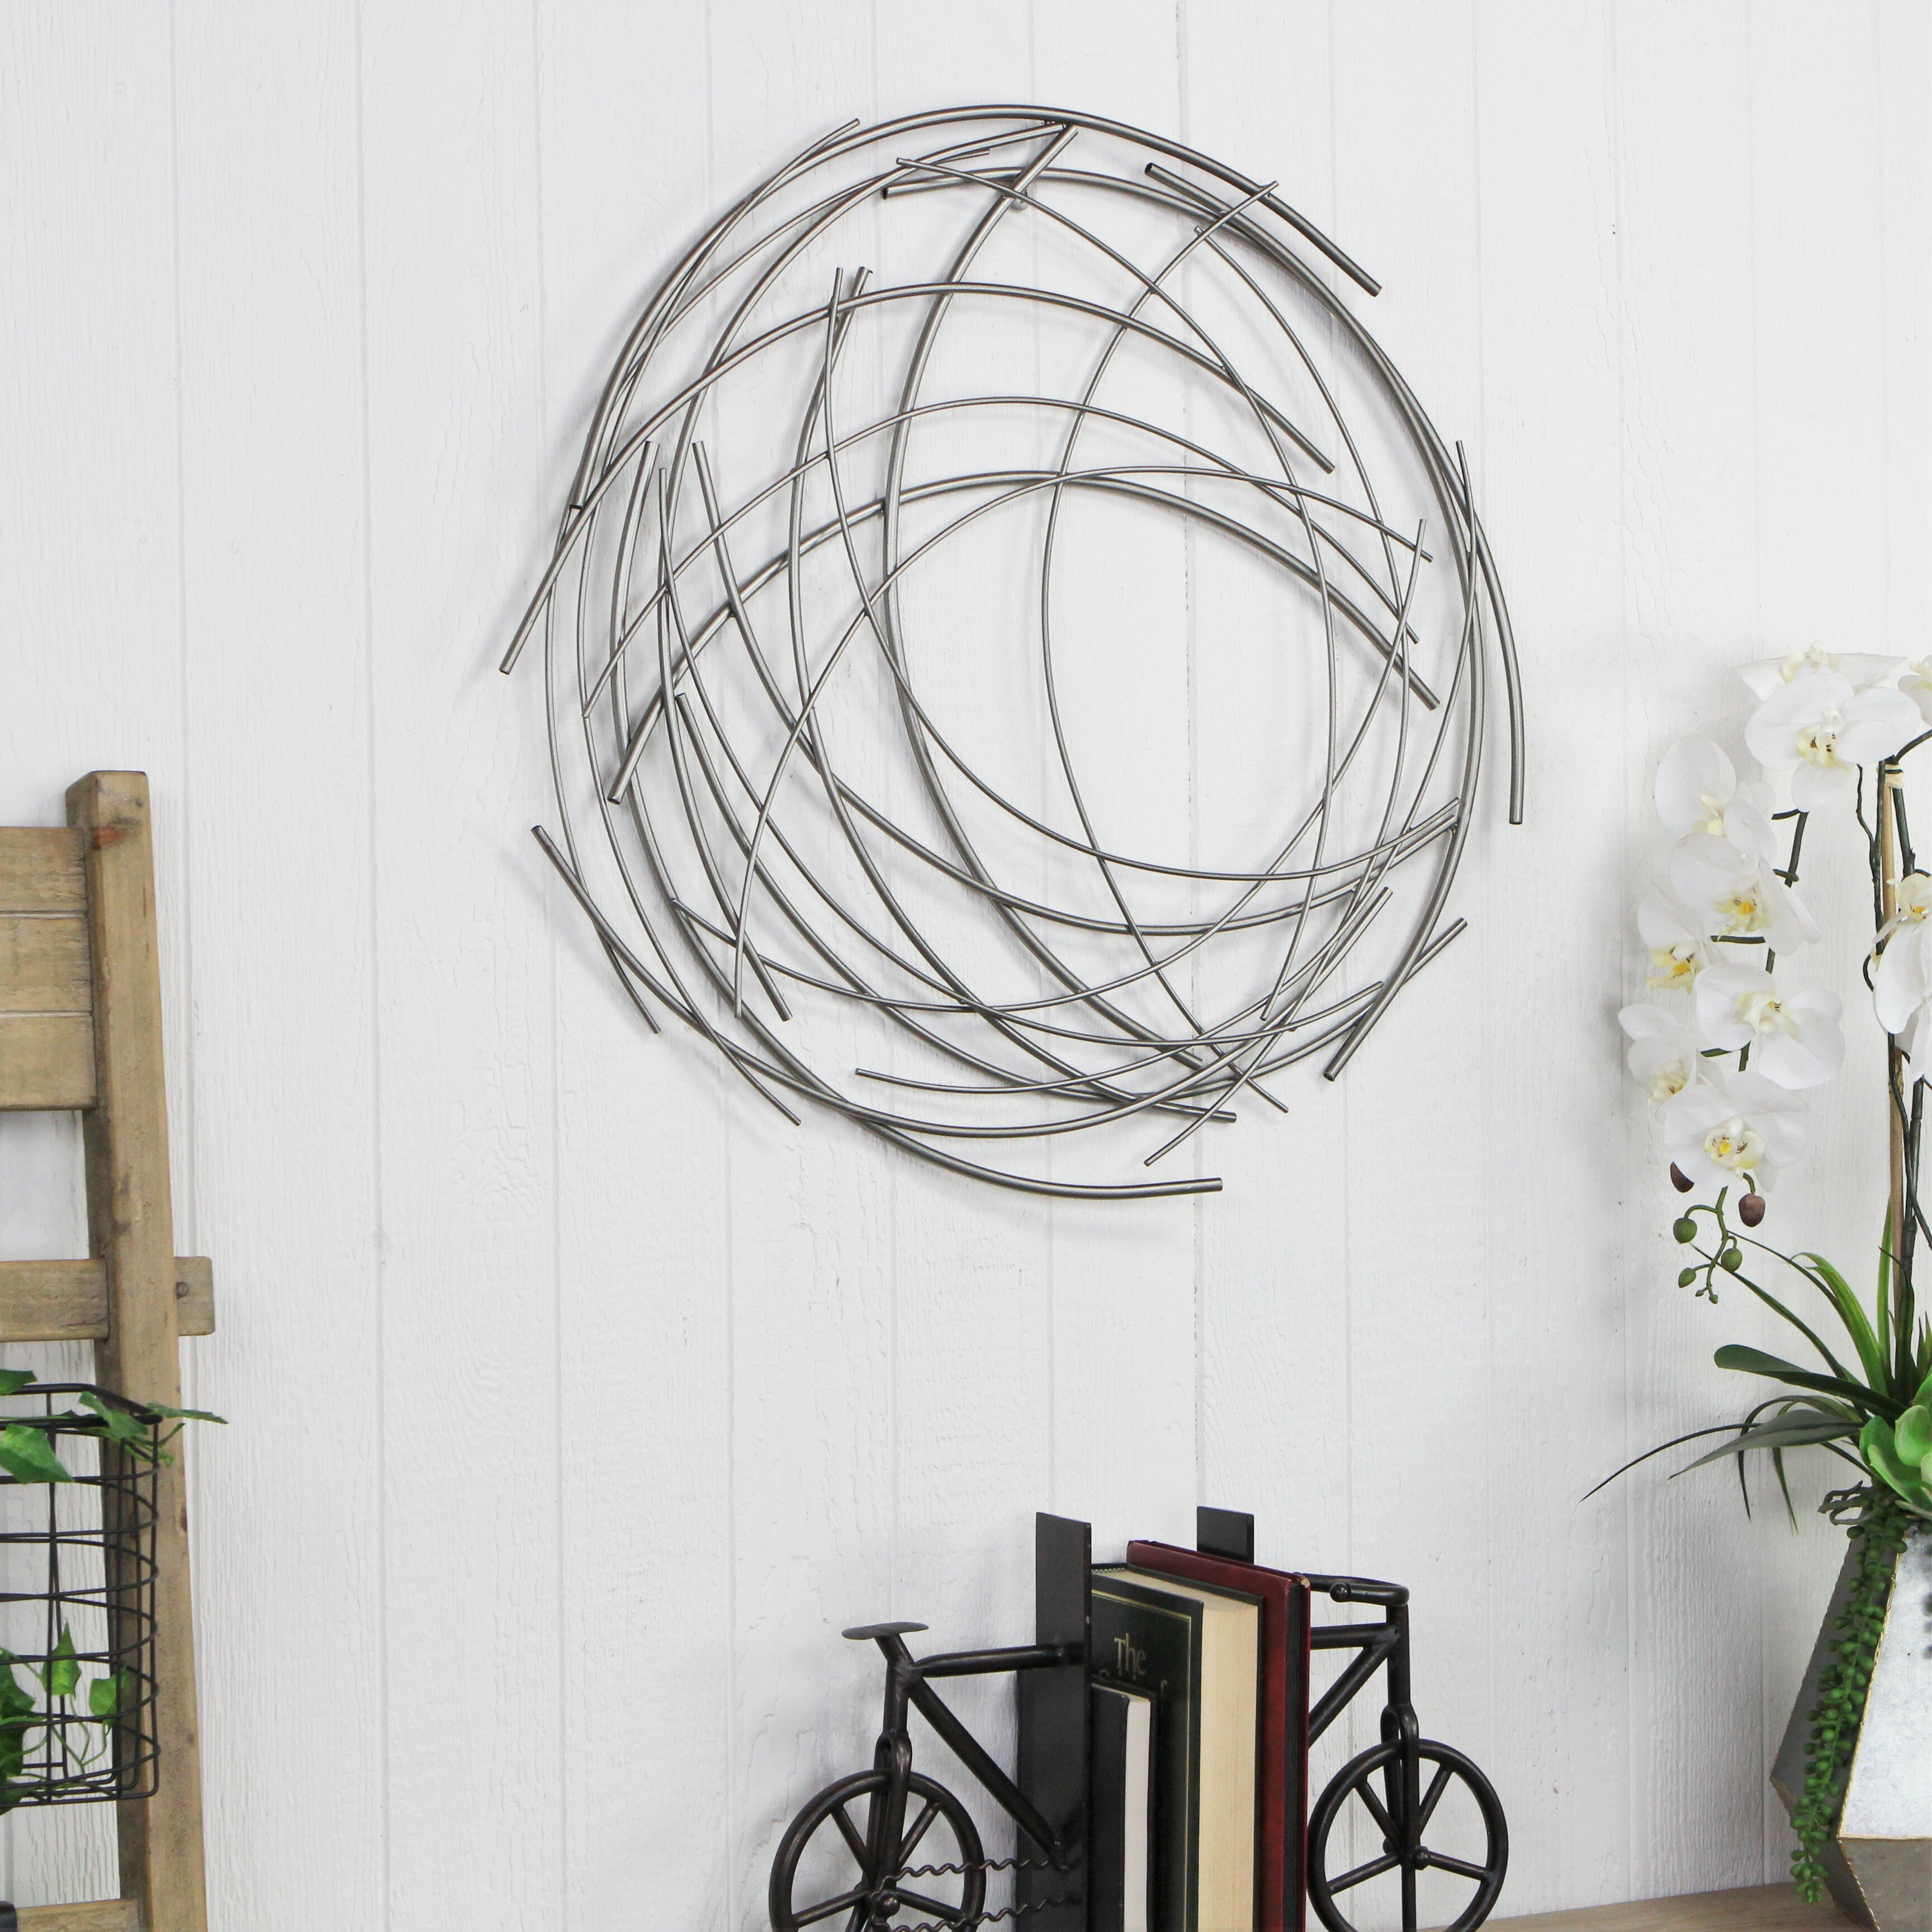 Arch Wall Decor | Wayfair throughout Farm Metal Wall Rack and 3 Tin Pot With Hanger Wall Decor (Image 9 of 30)